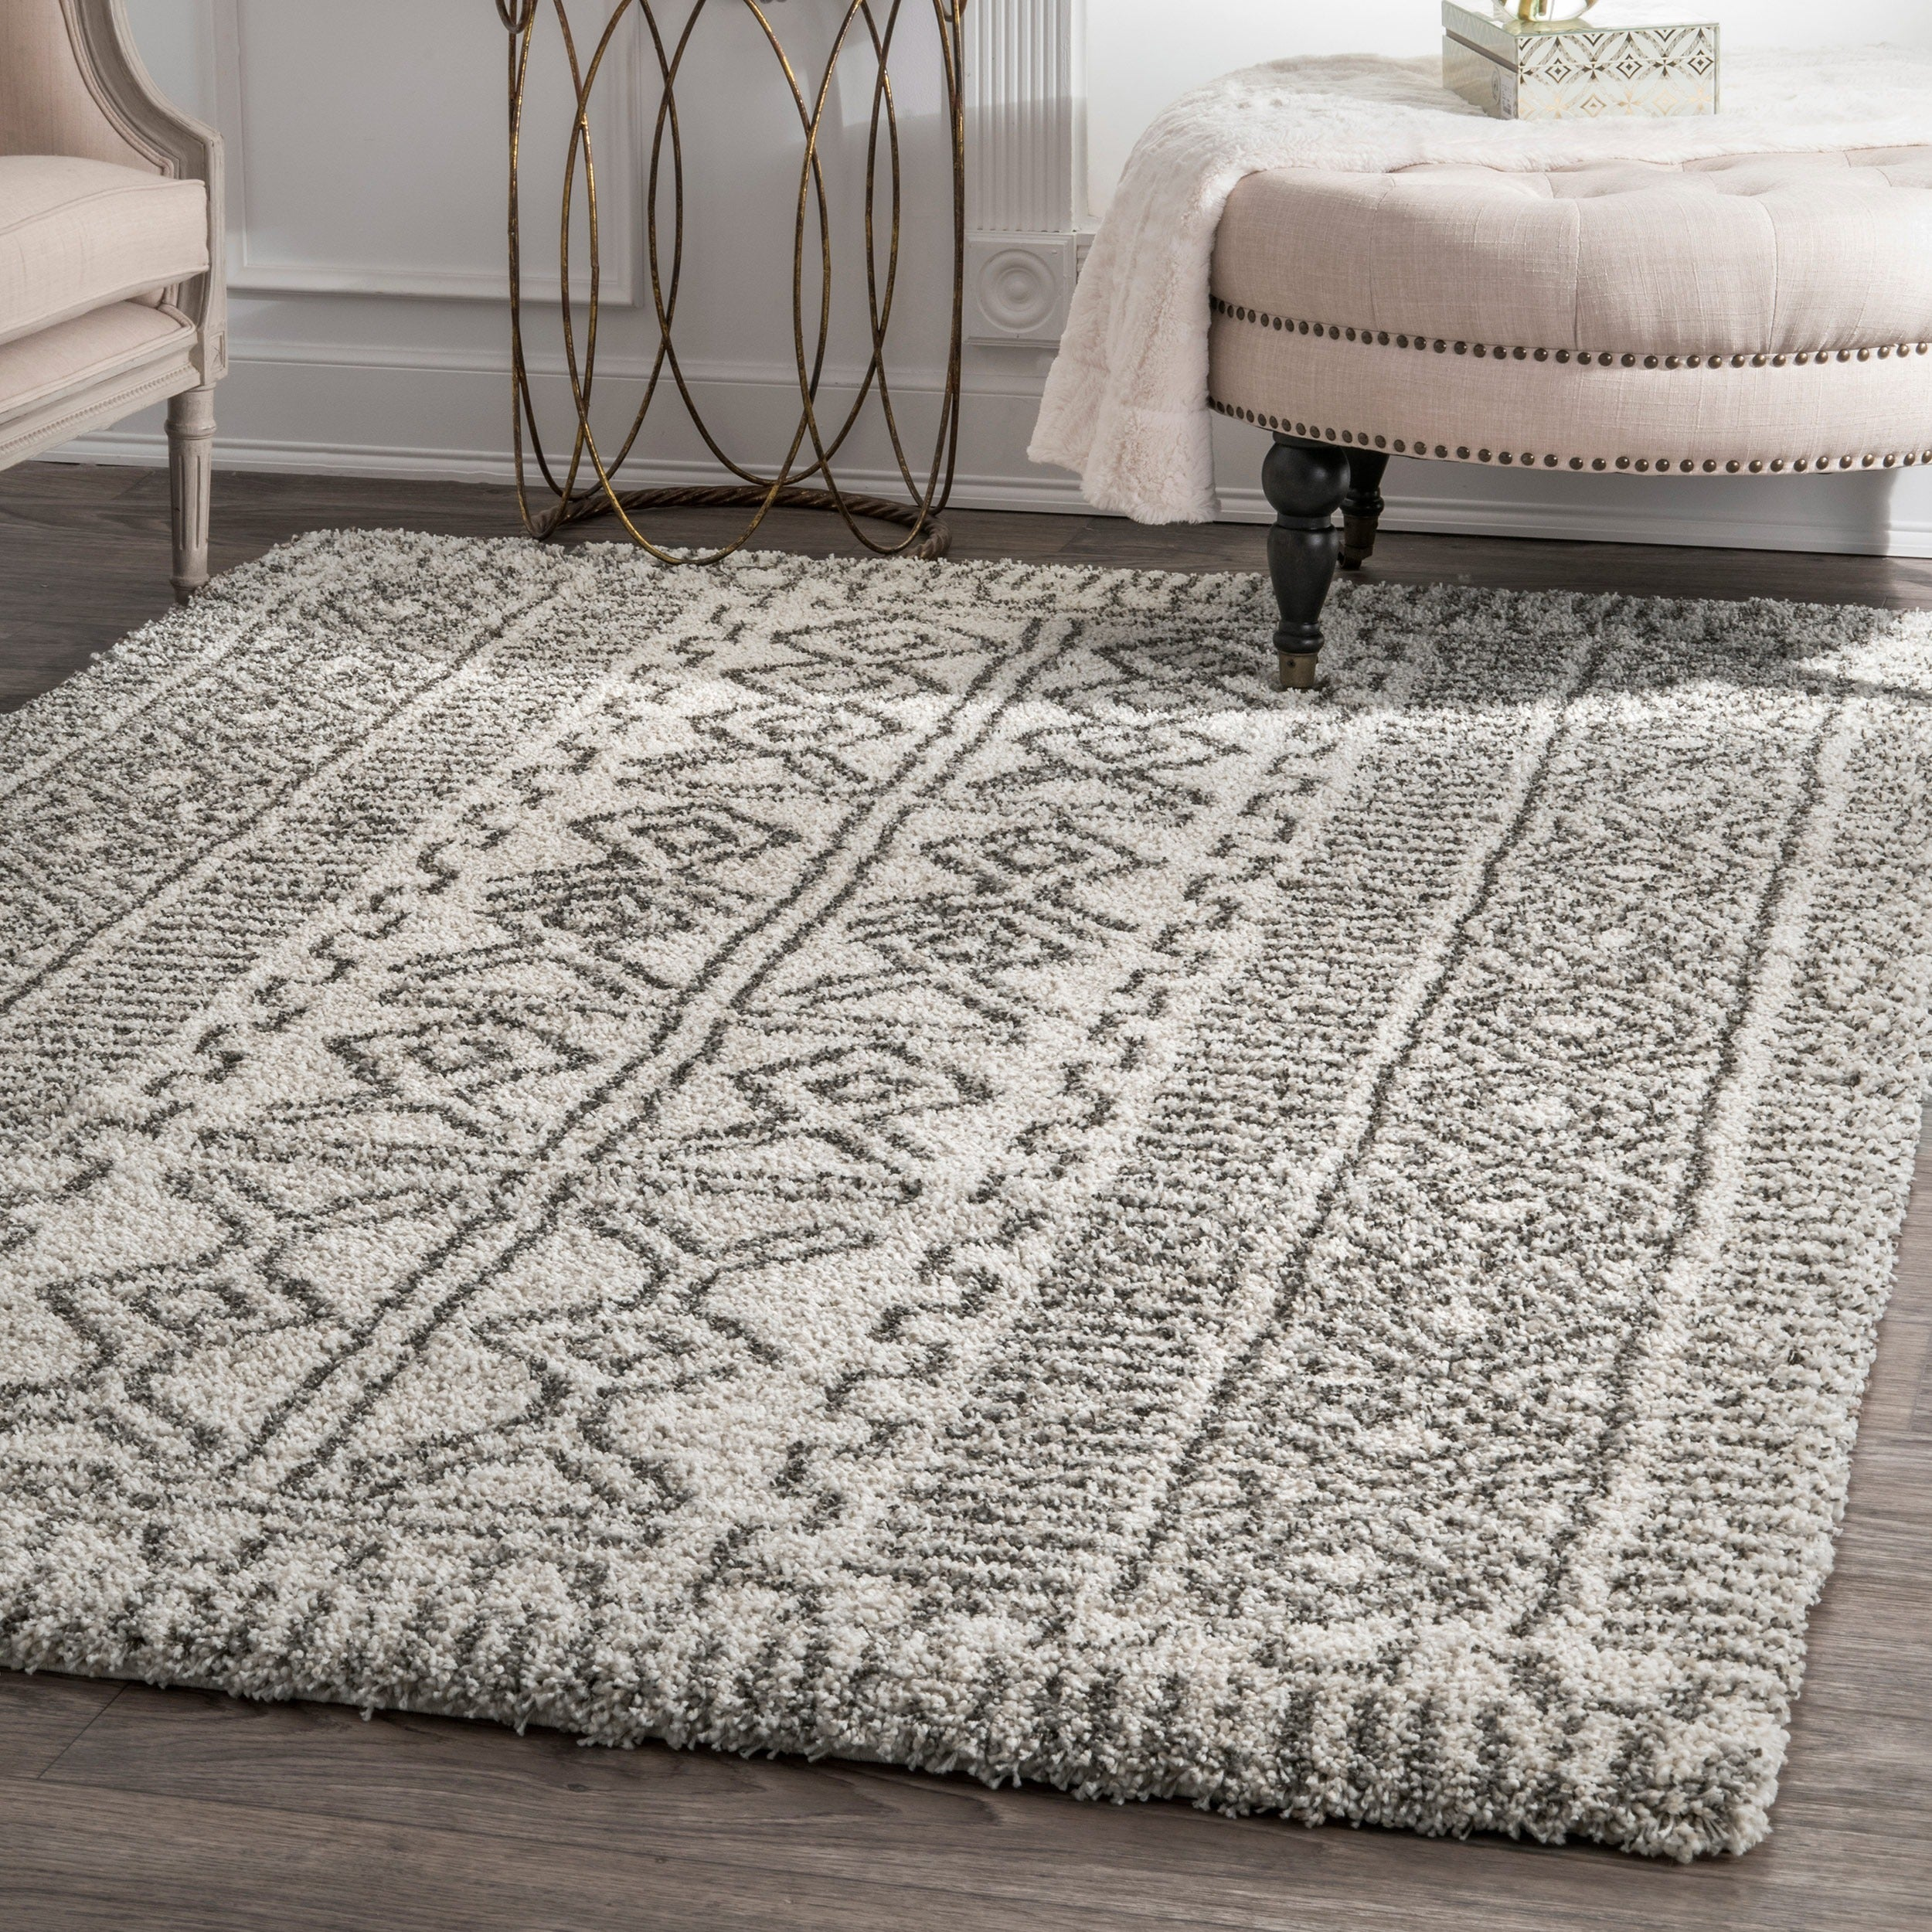 Nuloom Moroccan Inspired Luxuries Soft And Plush Abstract Tribal Ivory Rug